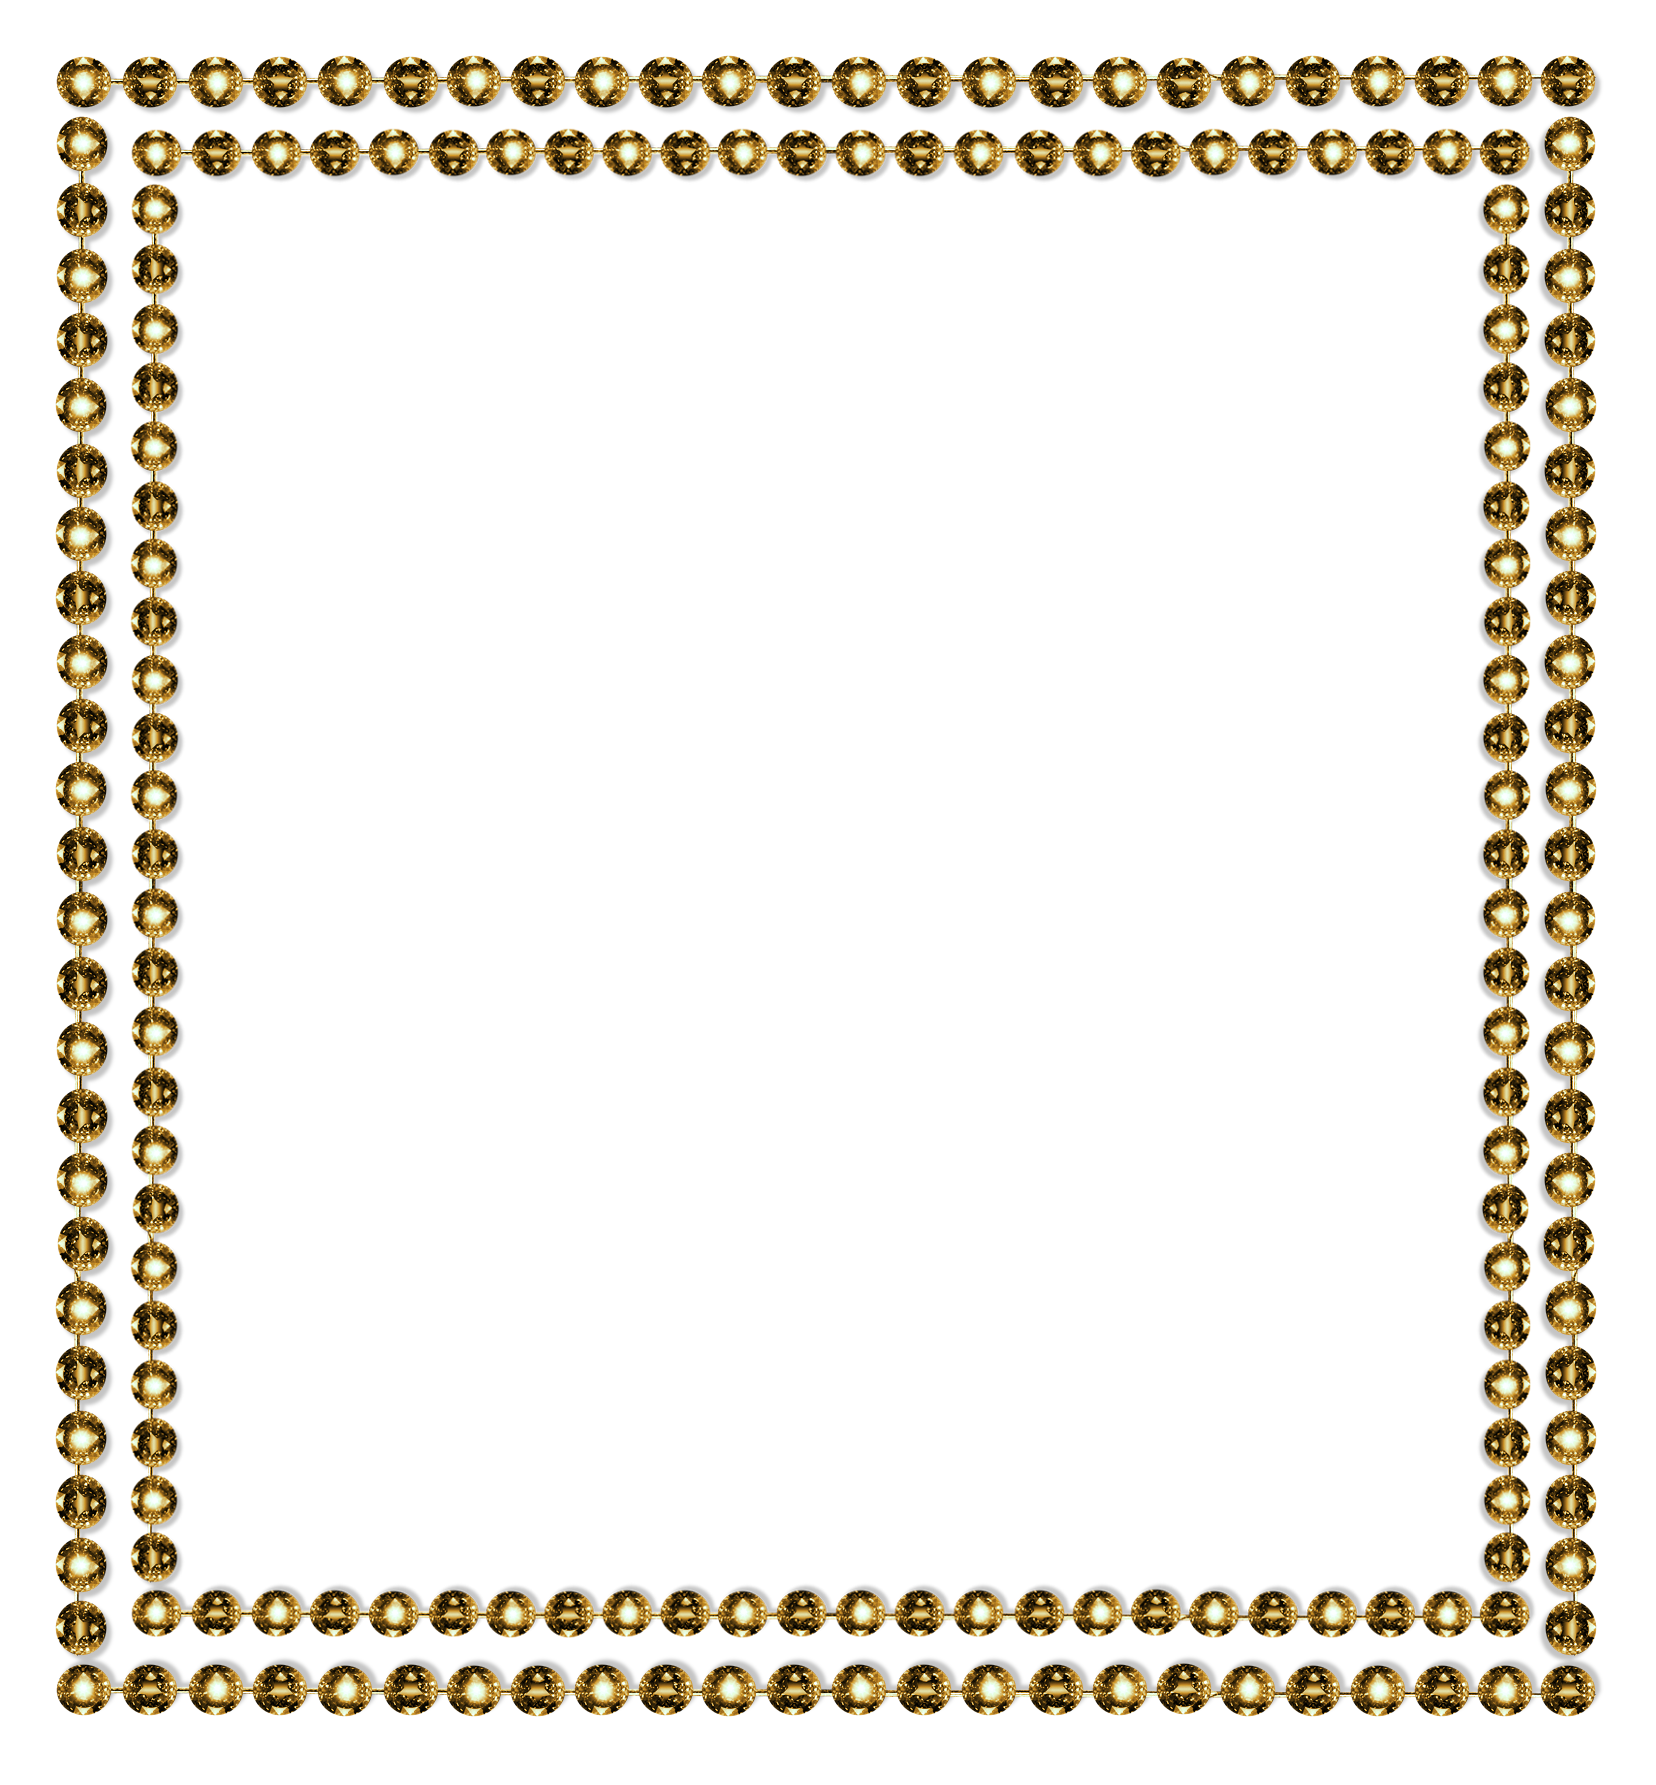 Glitter clipart diamond. Border png gold by